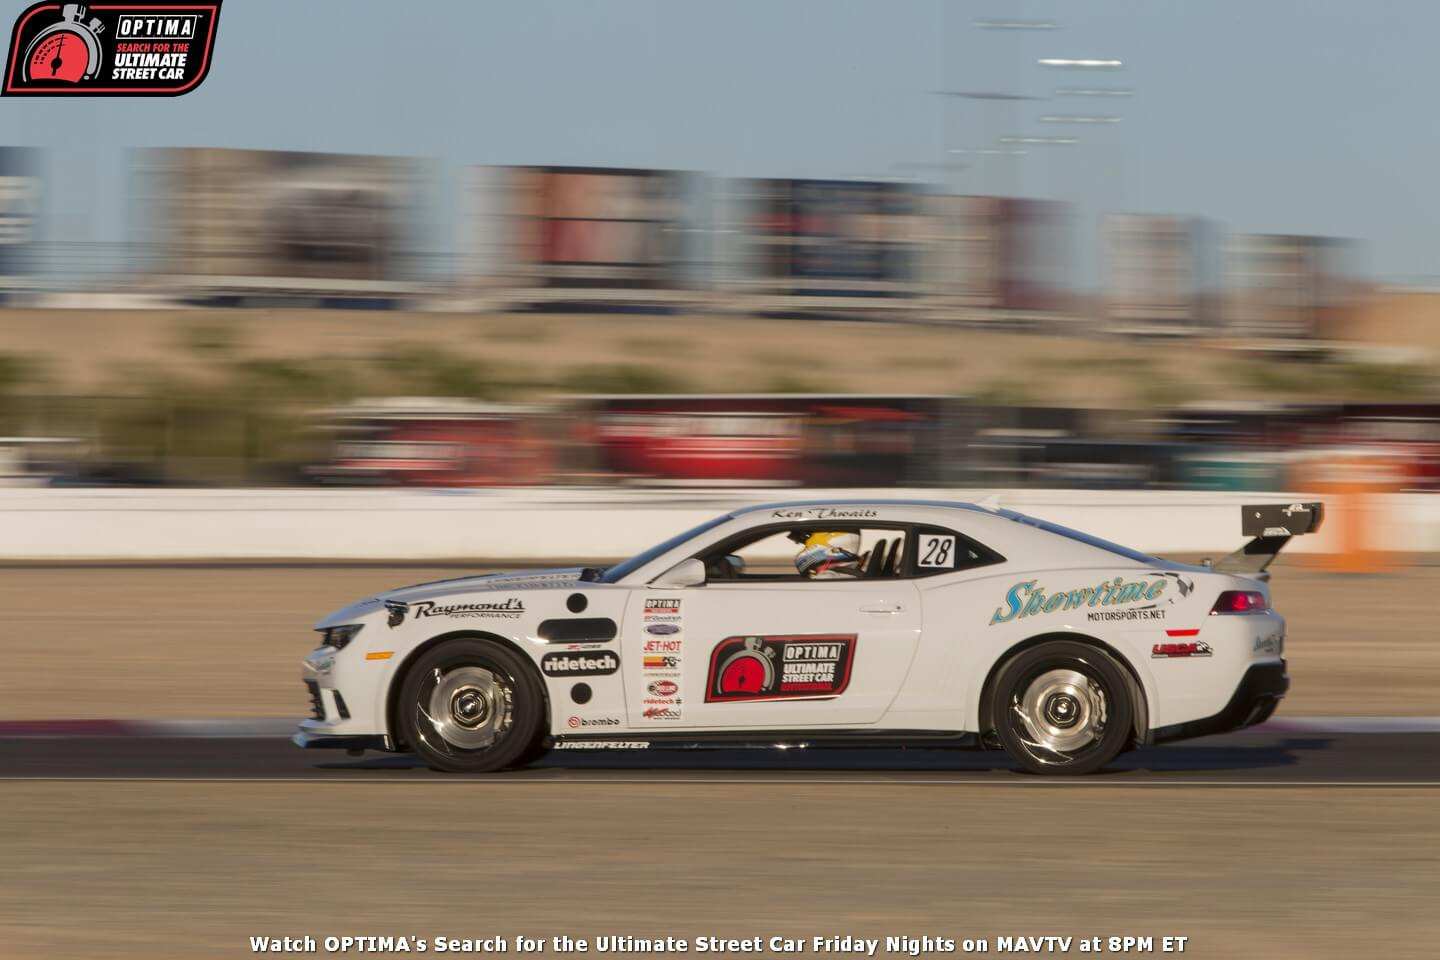 Ken-Thwaits-2014-Chevrolet-Camaro-Z28-OPTIMA-Ultimate-Street-Car-Invitational-2014-BFGoodrich-Hot-Lap-Challenge_321